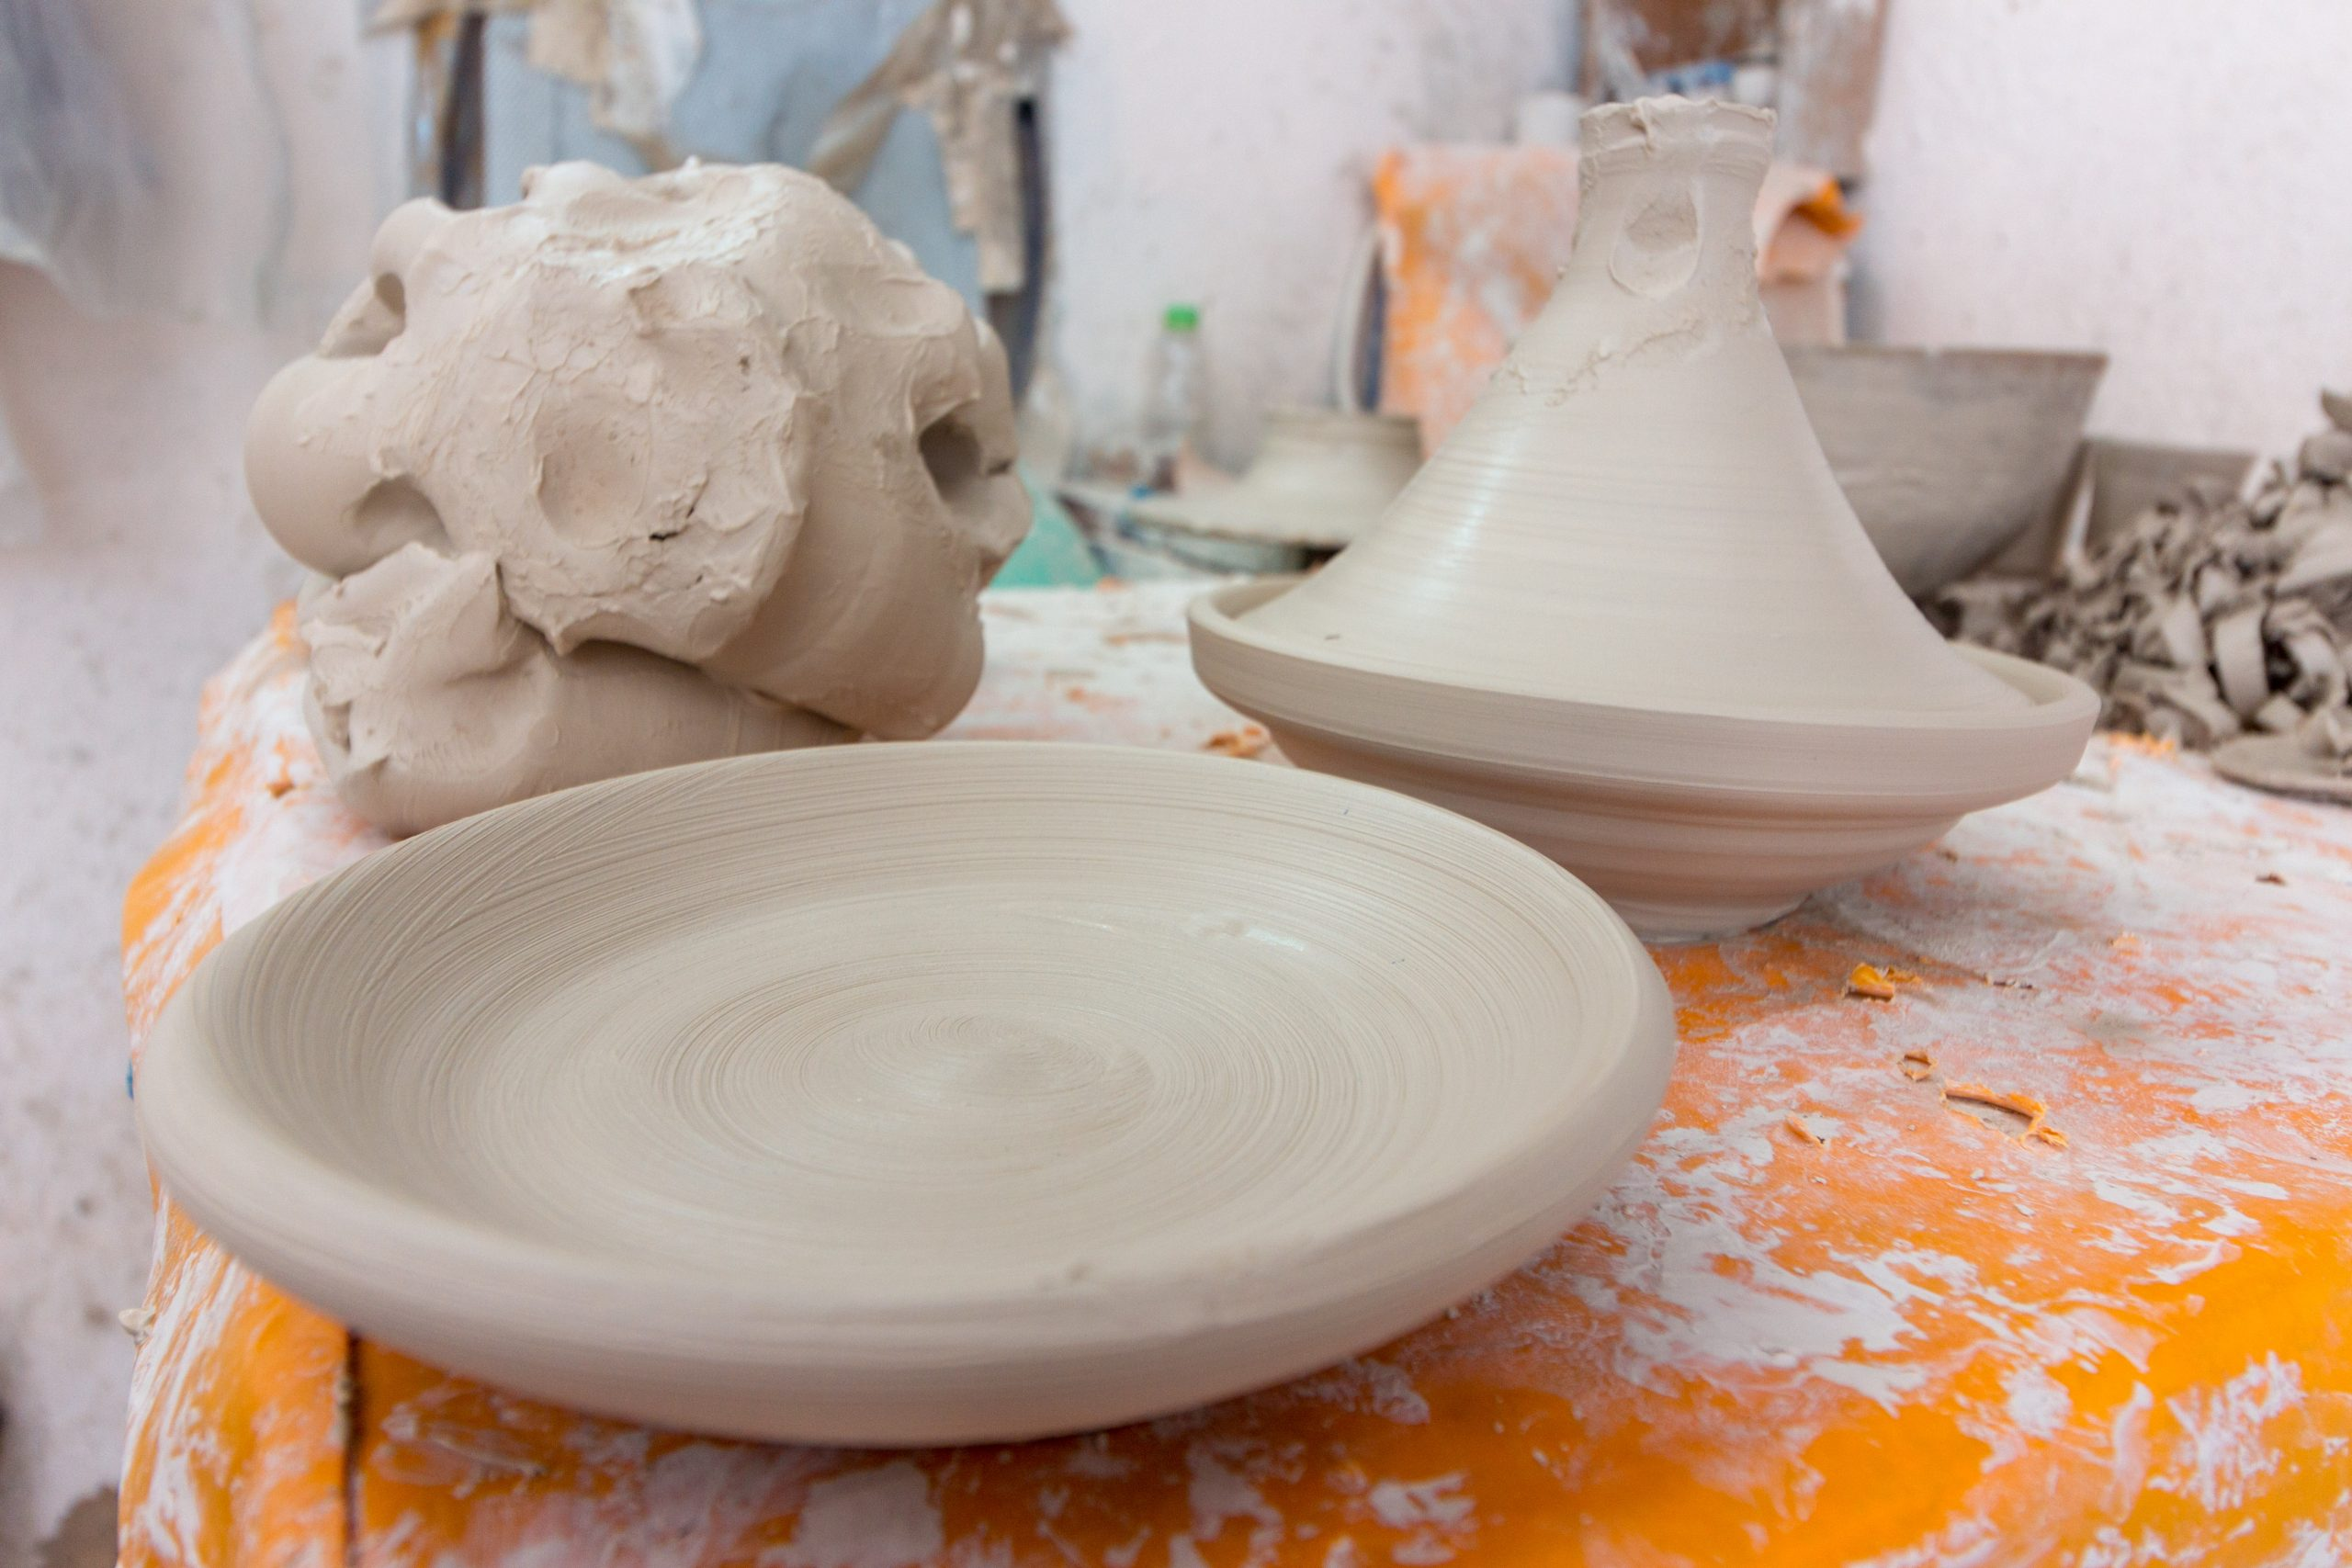 gallery image for Private Pottery Workshop Marrakech